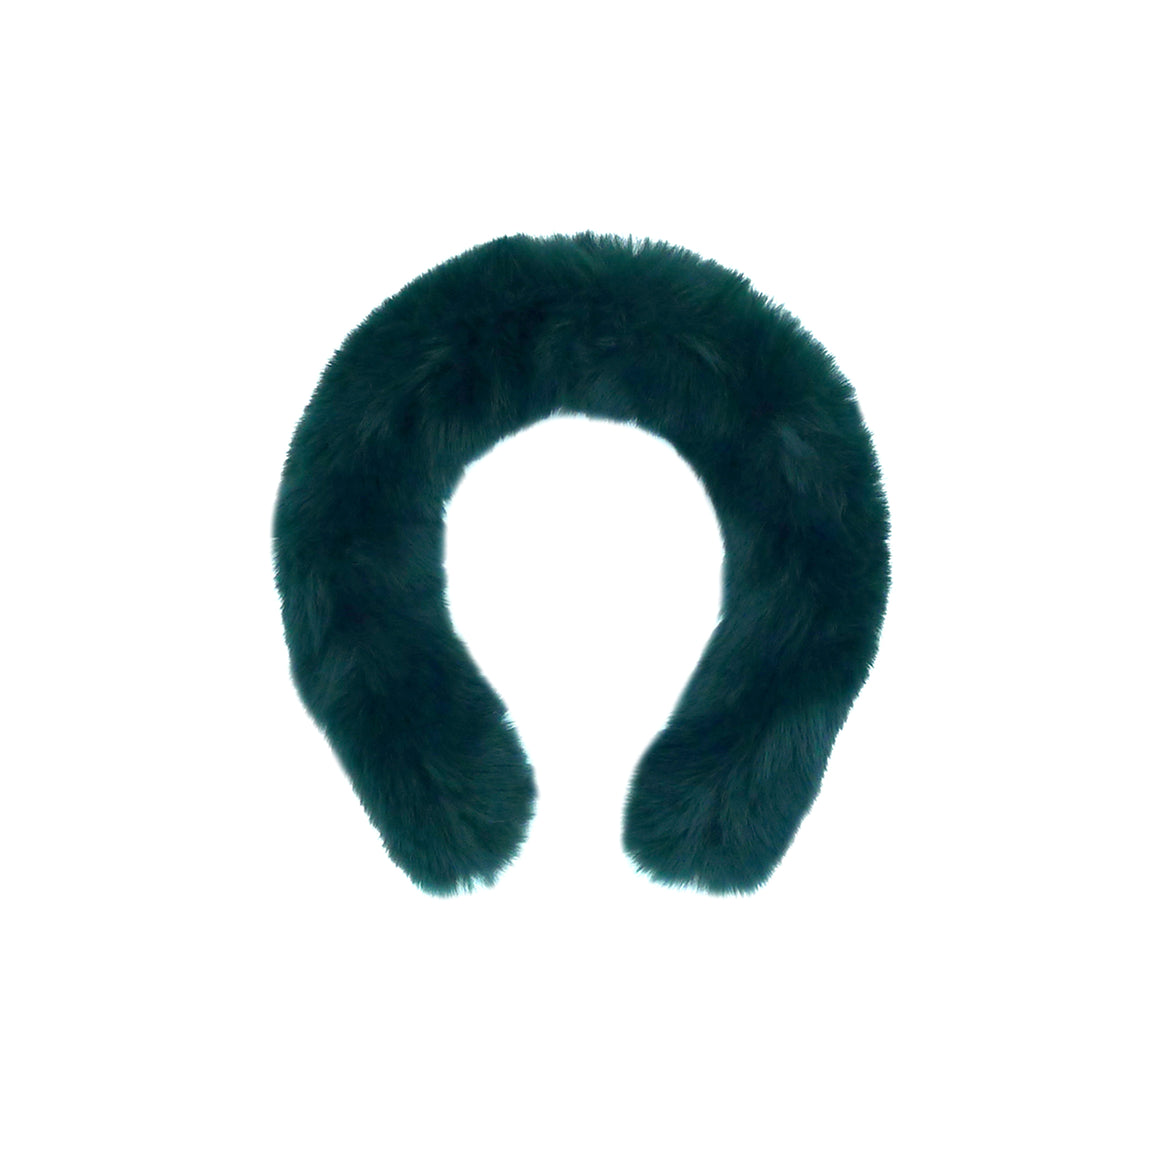 CELESTE | Green Faux Fur Headband, Hair, Tuleste, Tuleste